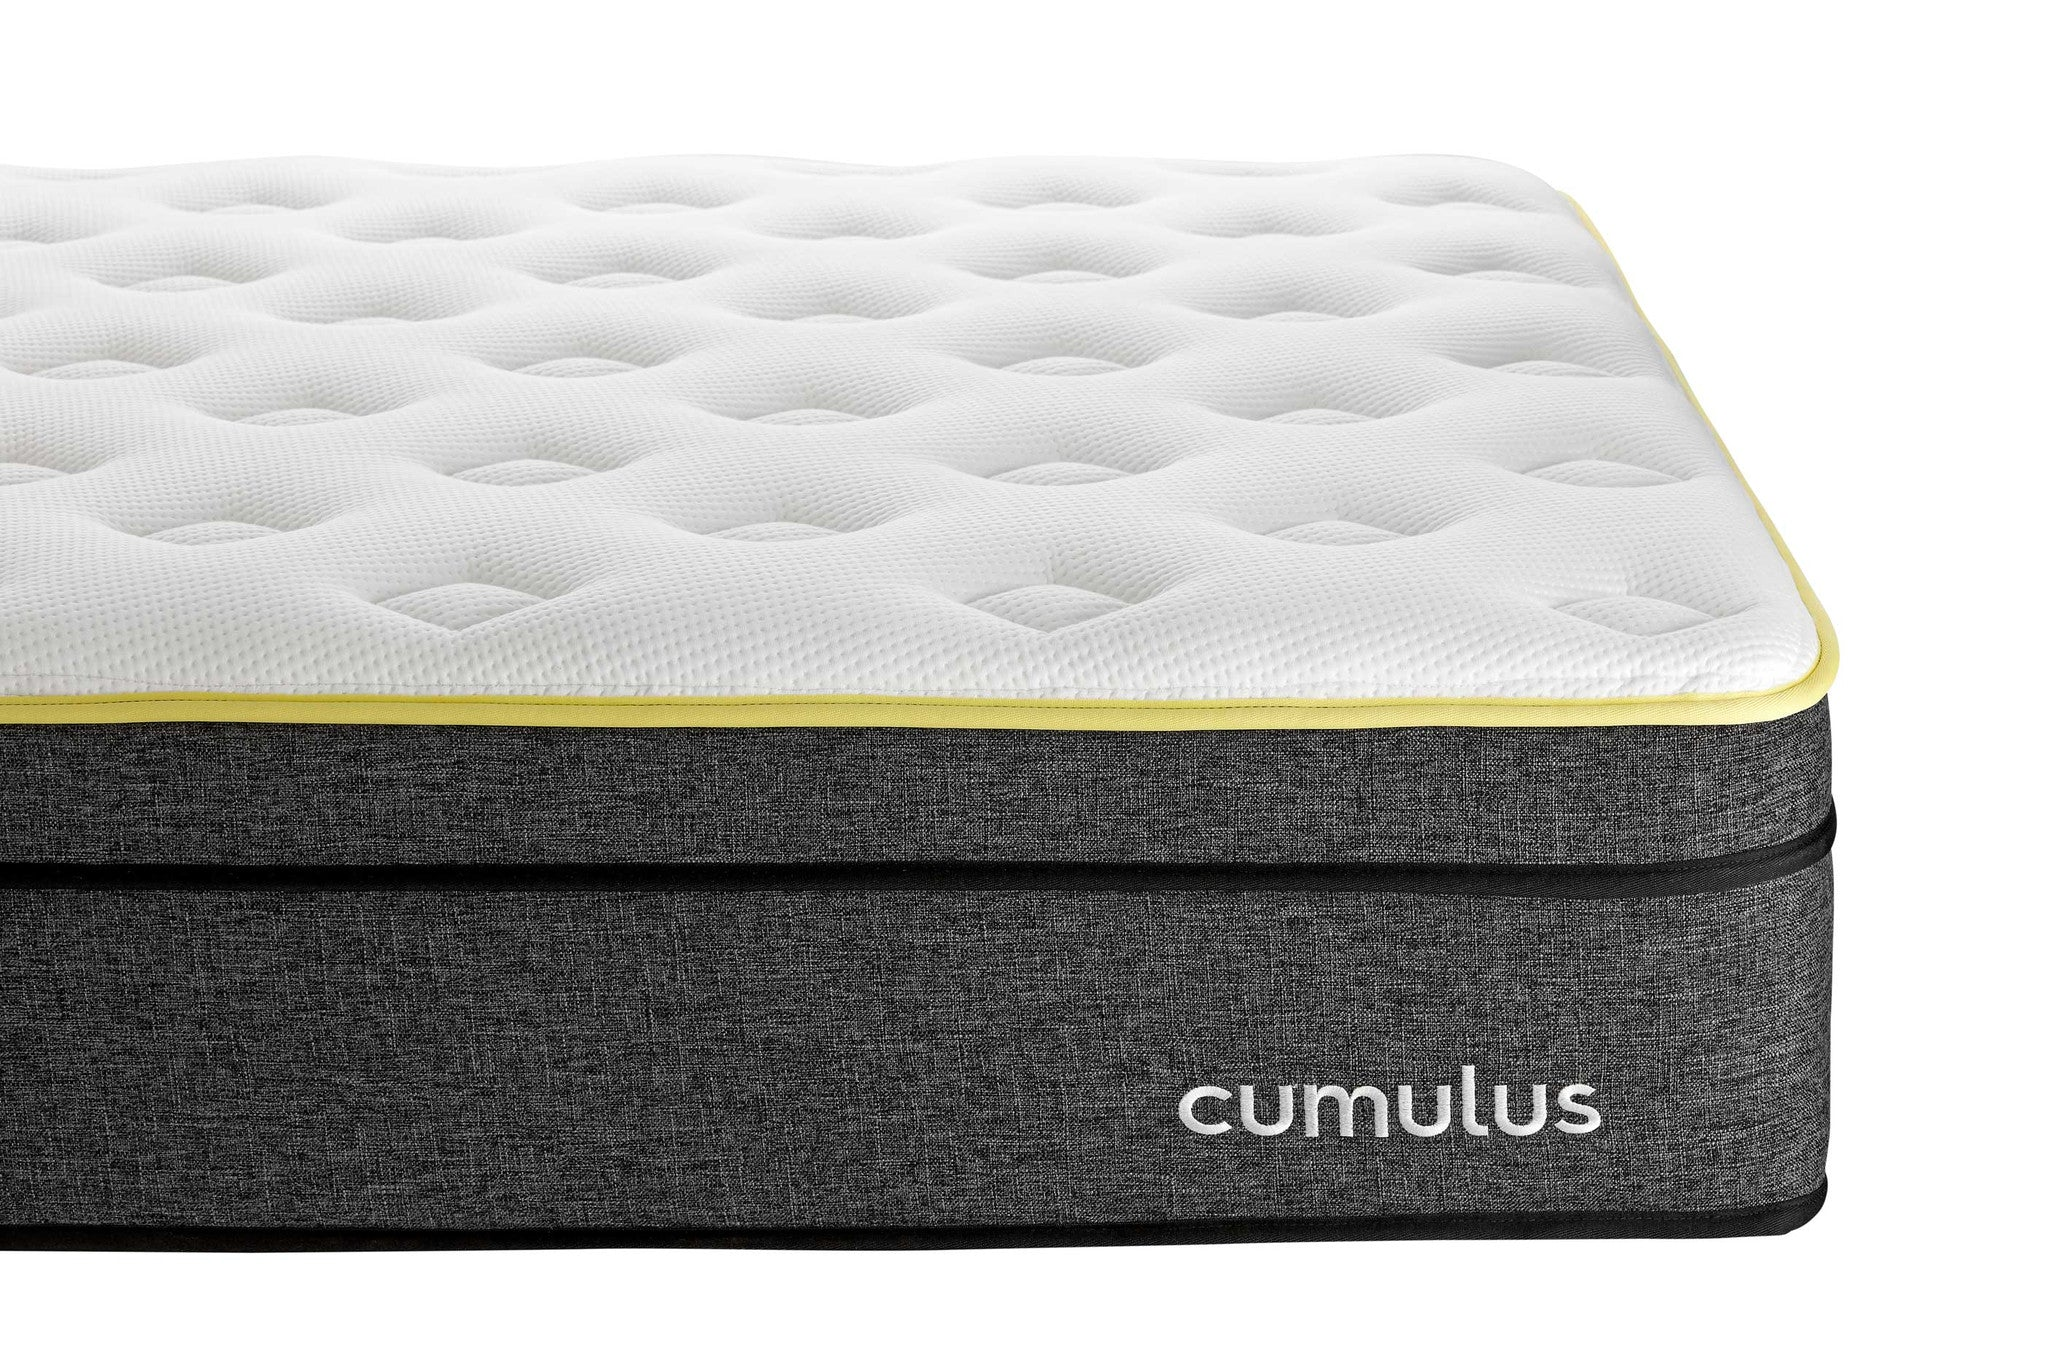 Cumulus Mattress Bottom